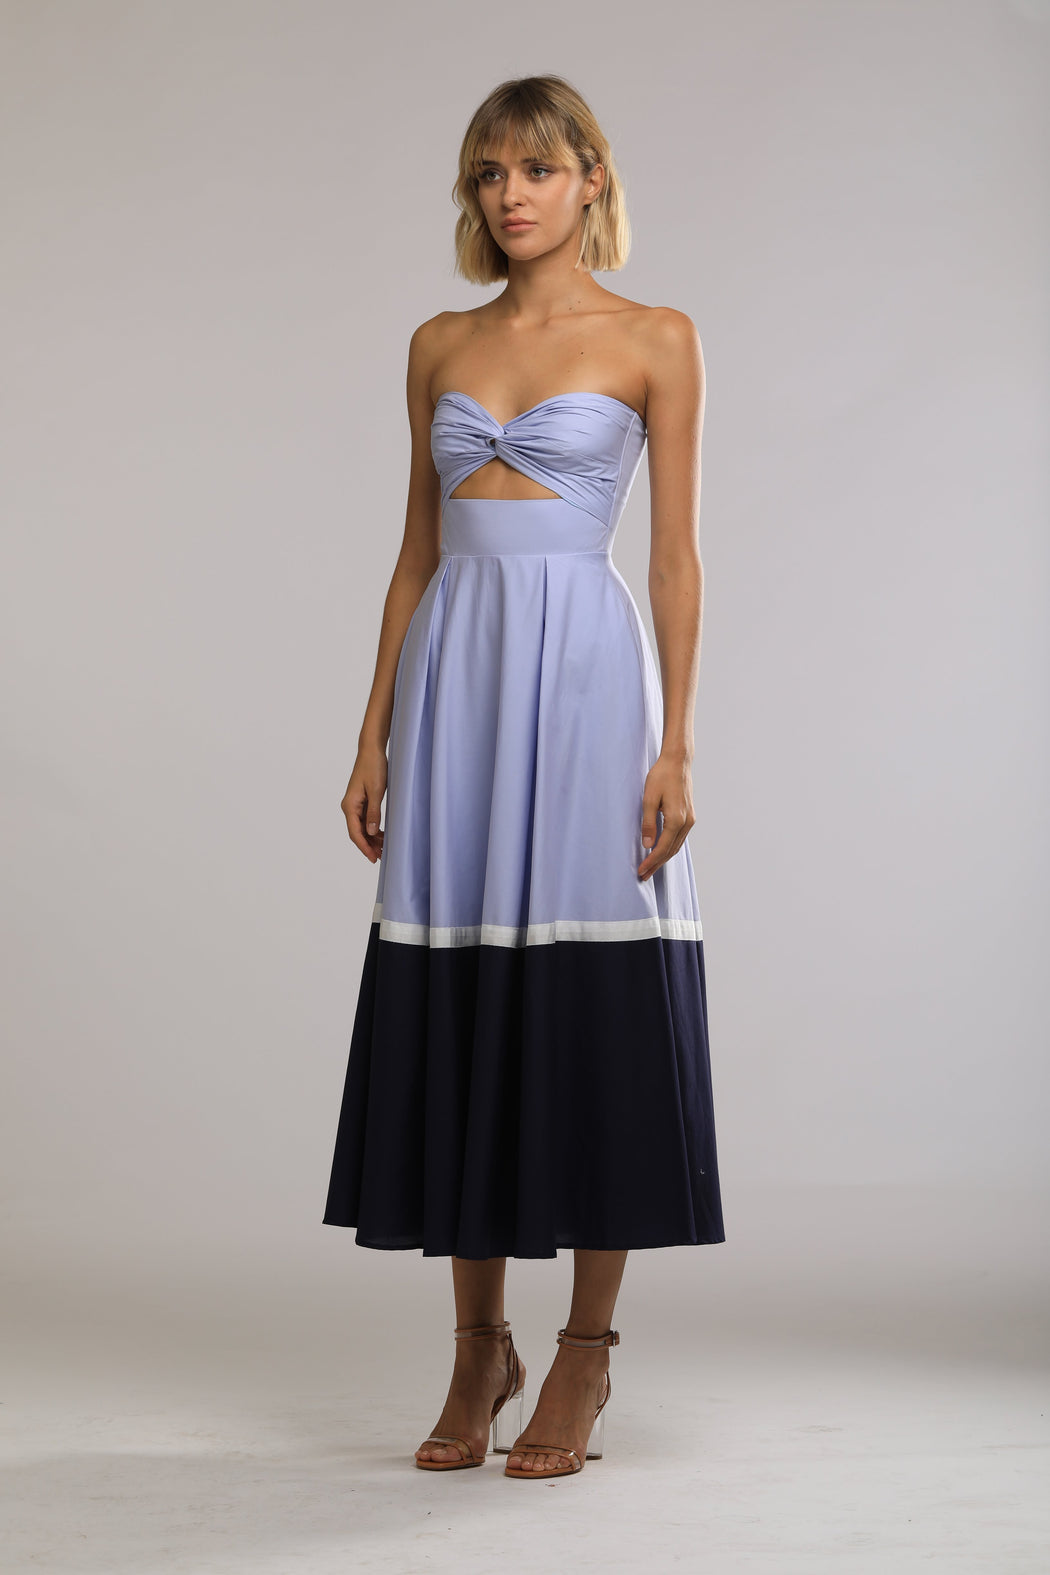 Poppy Cotton Color Block Dress (Periwinkle/Navy) - SAU LEE